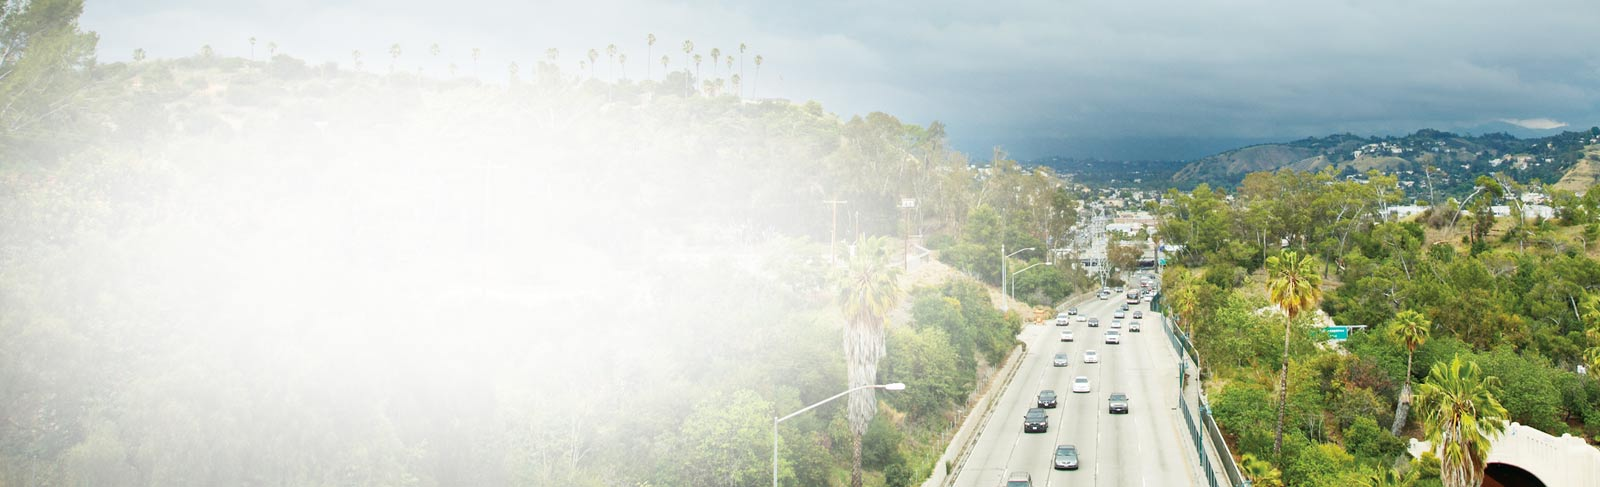 A highway leading to a city. Read SharePoint 2013 customer stories from around the world.